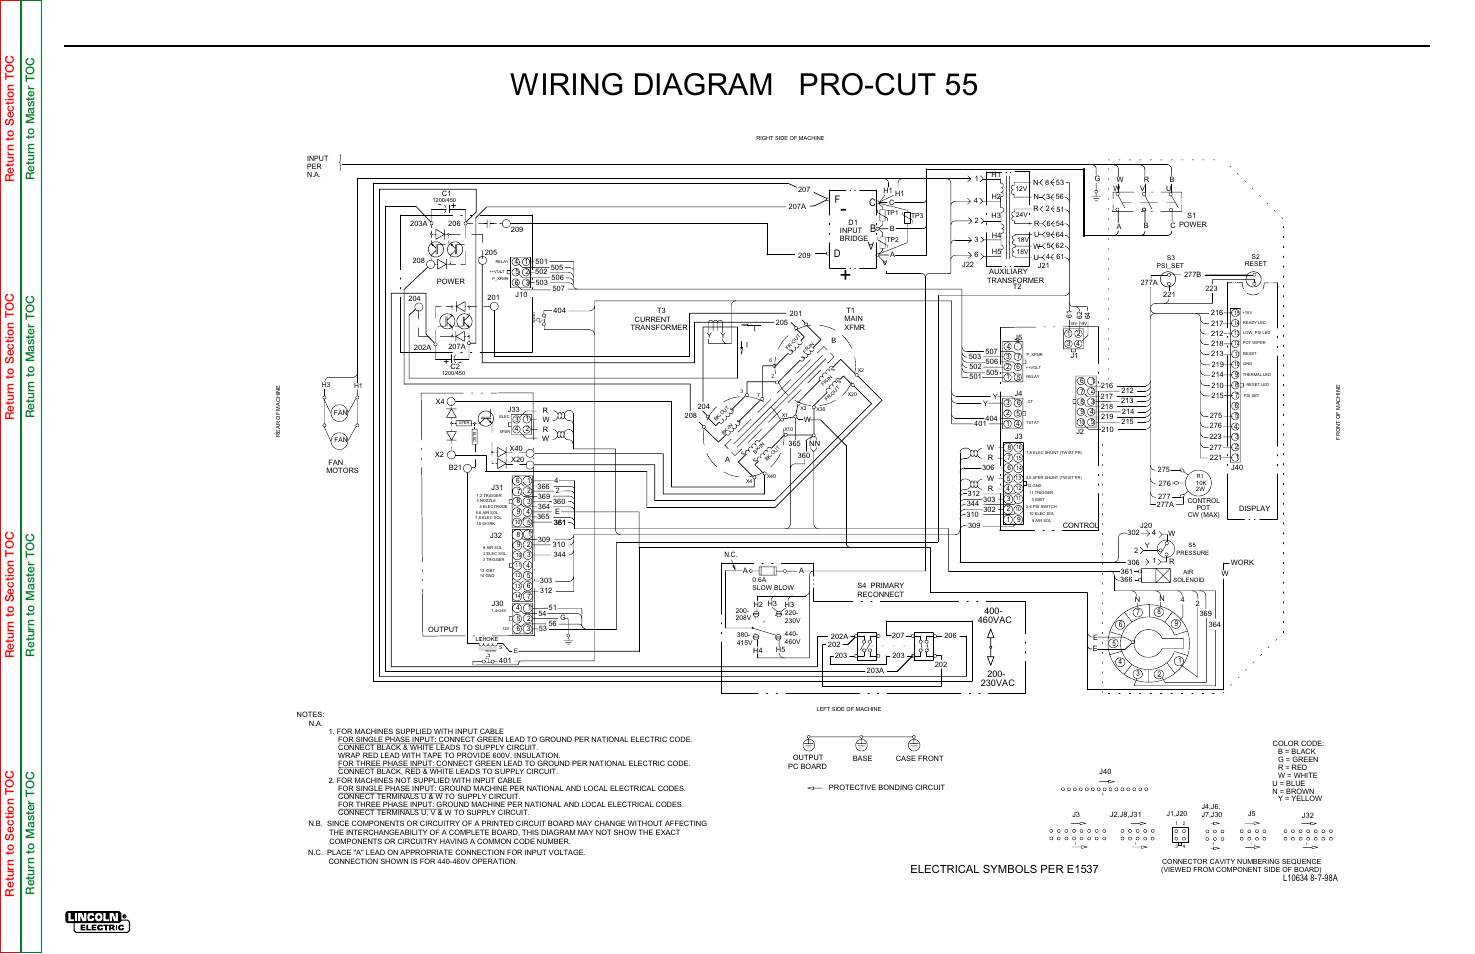 Wiring Diagram Pro Cut 55, Electrical Diagrams, Wiring Diagram 2001 Lincoln Navigator  Engine Diagram Lincoln Electric Wiring Diagrams